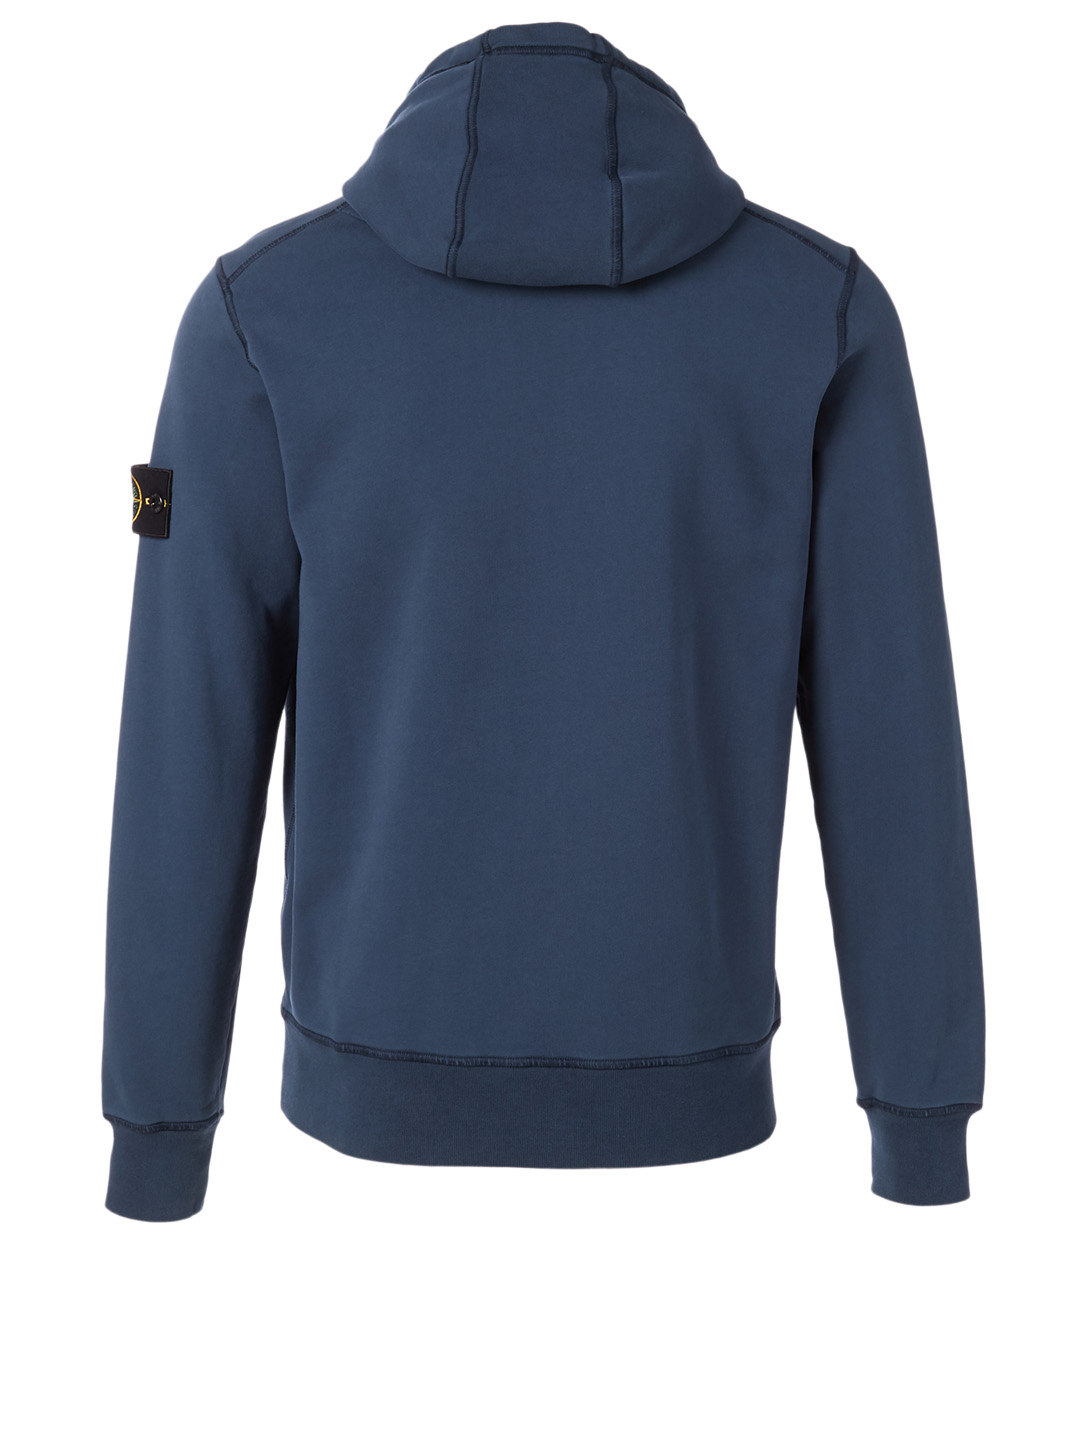 STONE ISLAND Cotton Hoodie Men's Blue